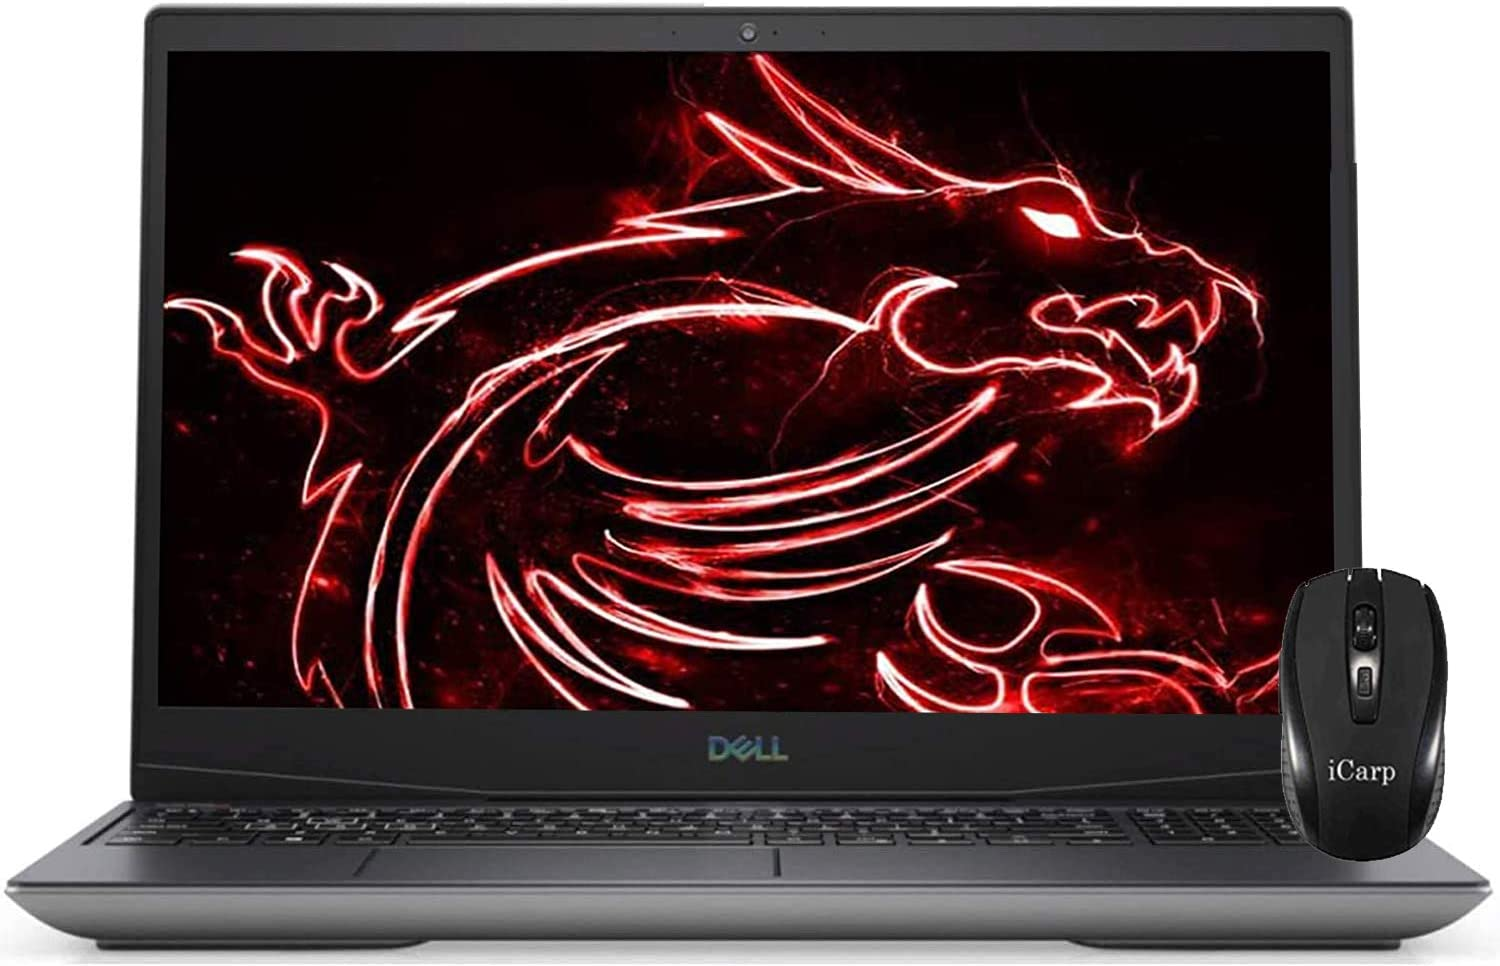 "2020 Flagship Dell G5 15 Gaming Laptop 15.6"" FHD Display 10th Gen Intel Hexa-Core i7-10750H 32GB DDR4 512GB PCIe SSD 1TB HDD 4GB GTX 1650 Ti Backlit Thunderbolt HDMI Win 10 + iCarp Wireless Mouse"